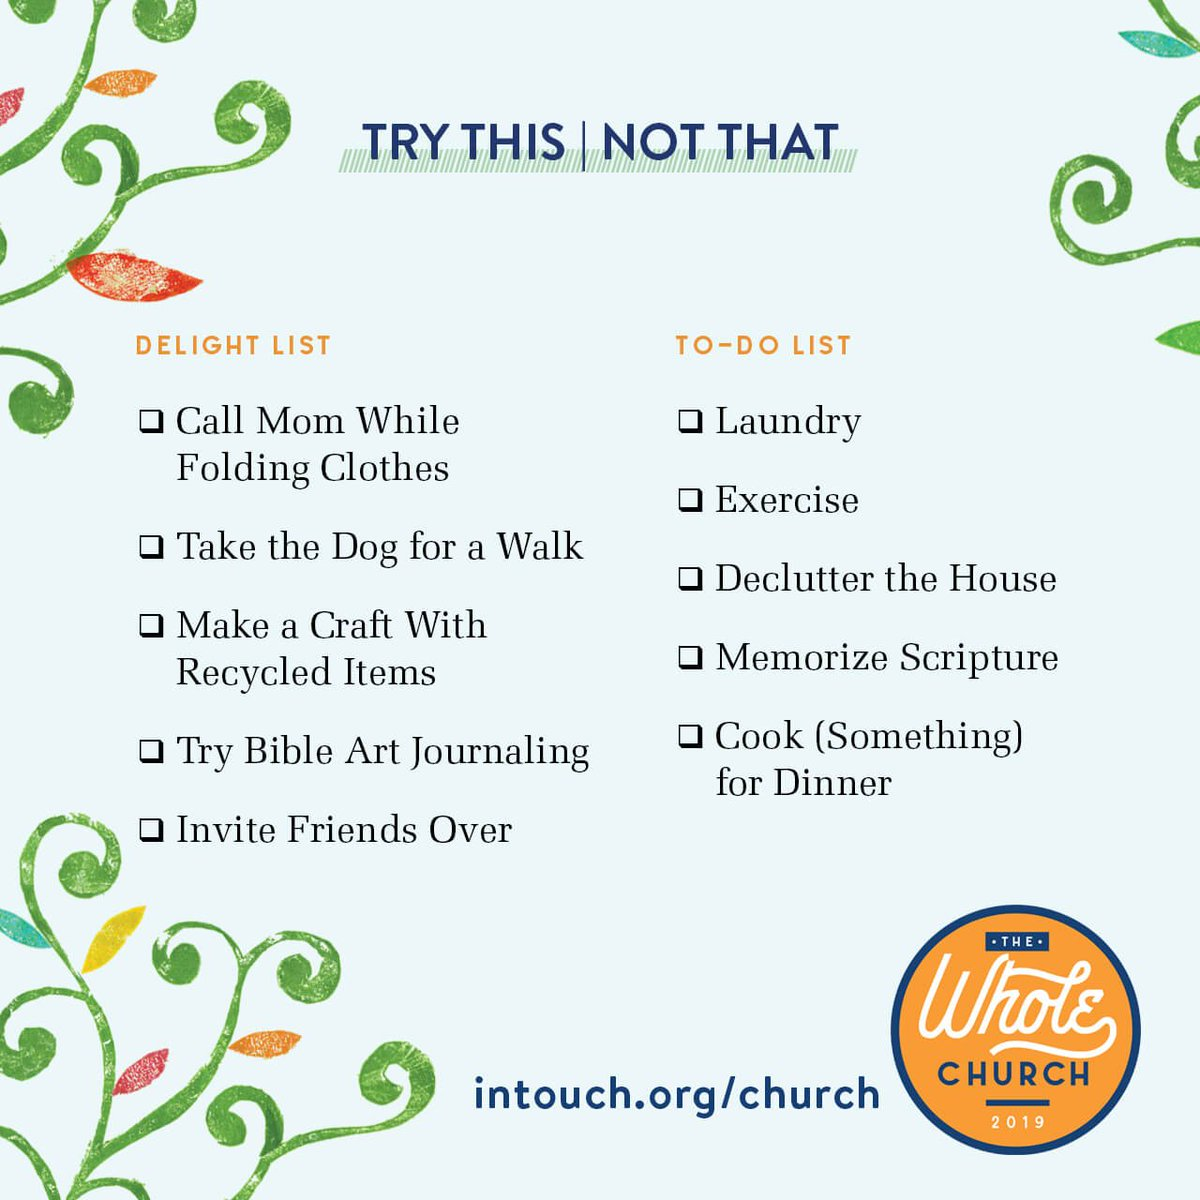 TELL US: What would it be like for you to shift from a to-do list mindset to a delight mindset? What do you think it would it be like to simply sit beside Jesus?